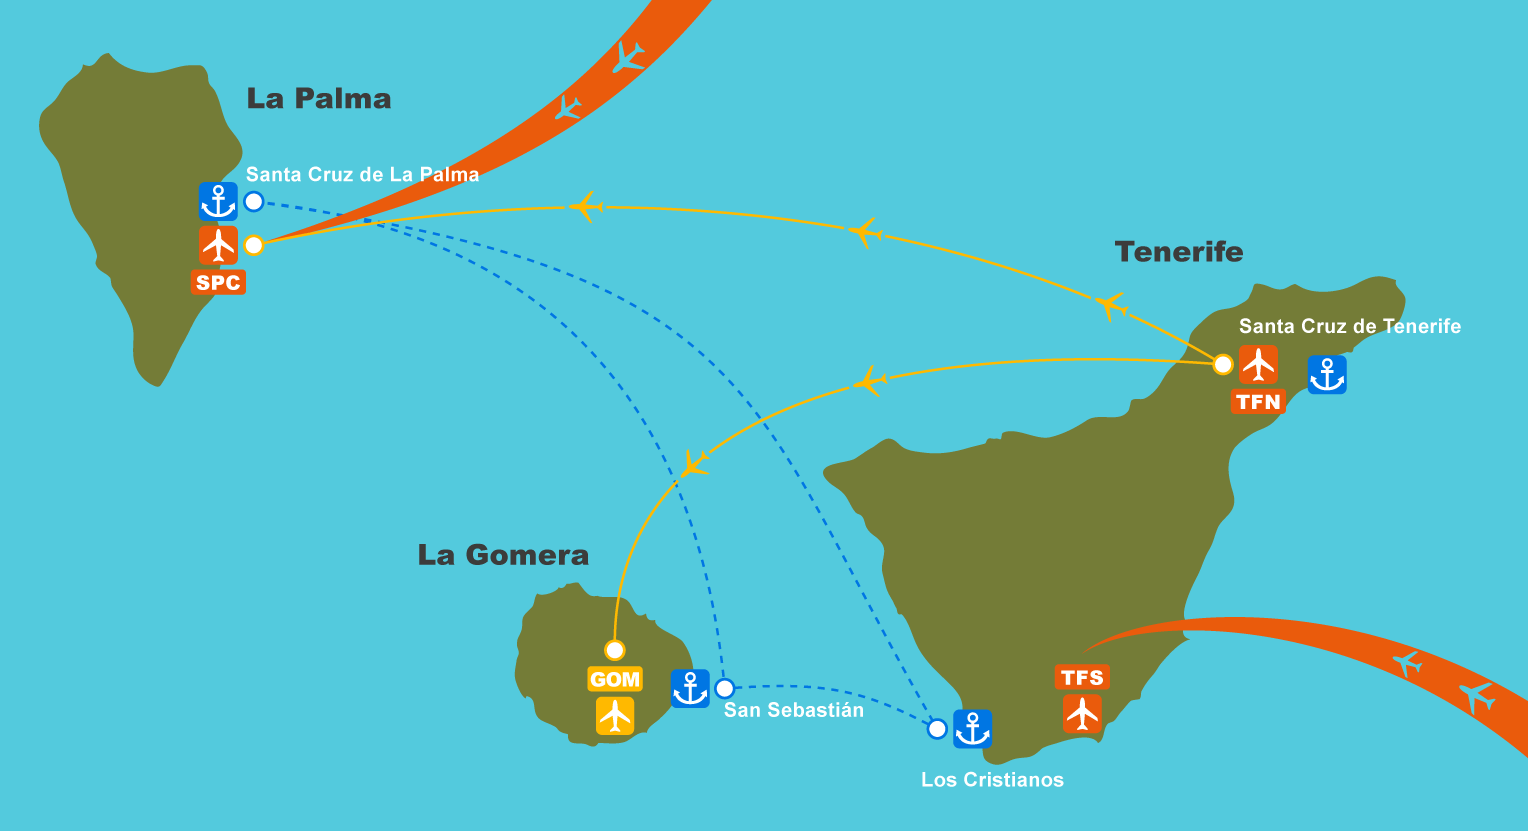 Getting to La Palma